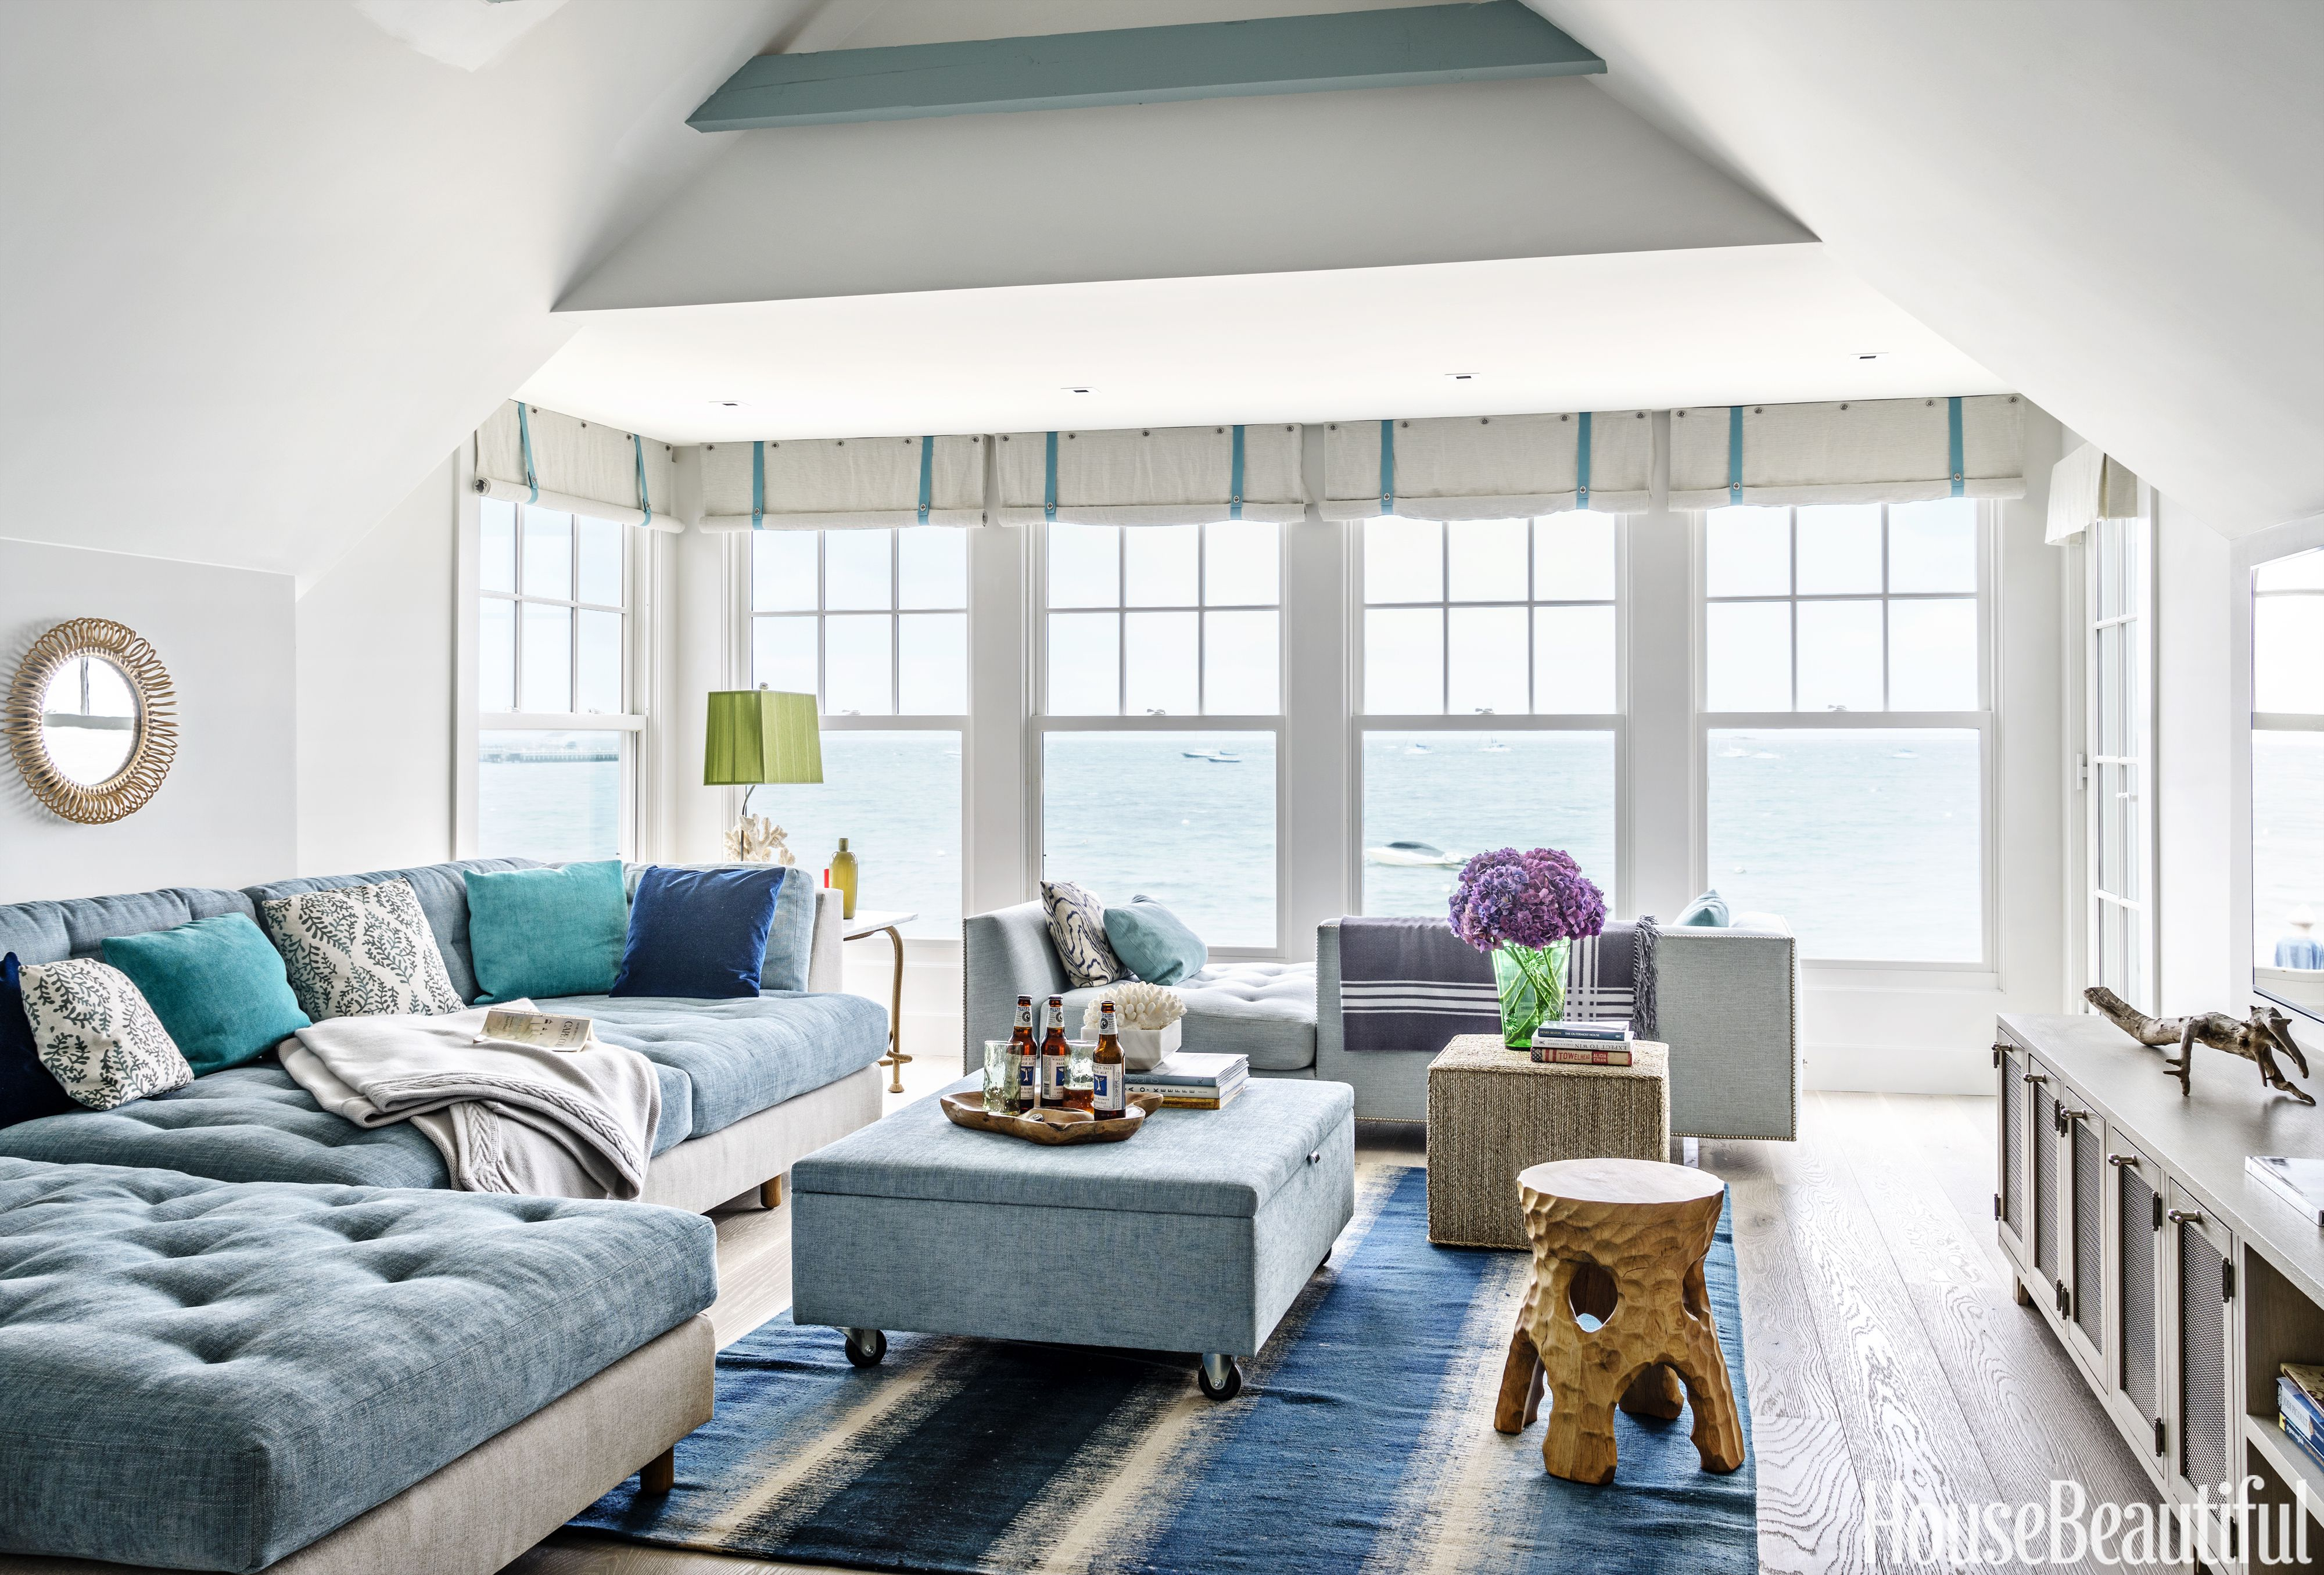 10 Best Ideas For Living Room Decoration 60 best living room decorating ideas designs housebeautiful 2020